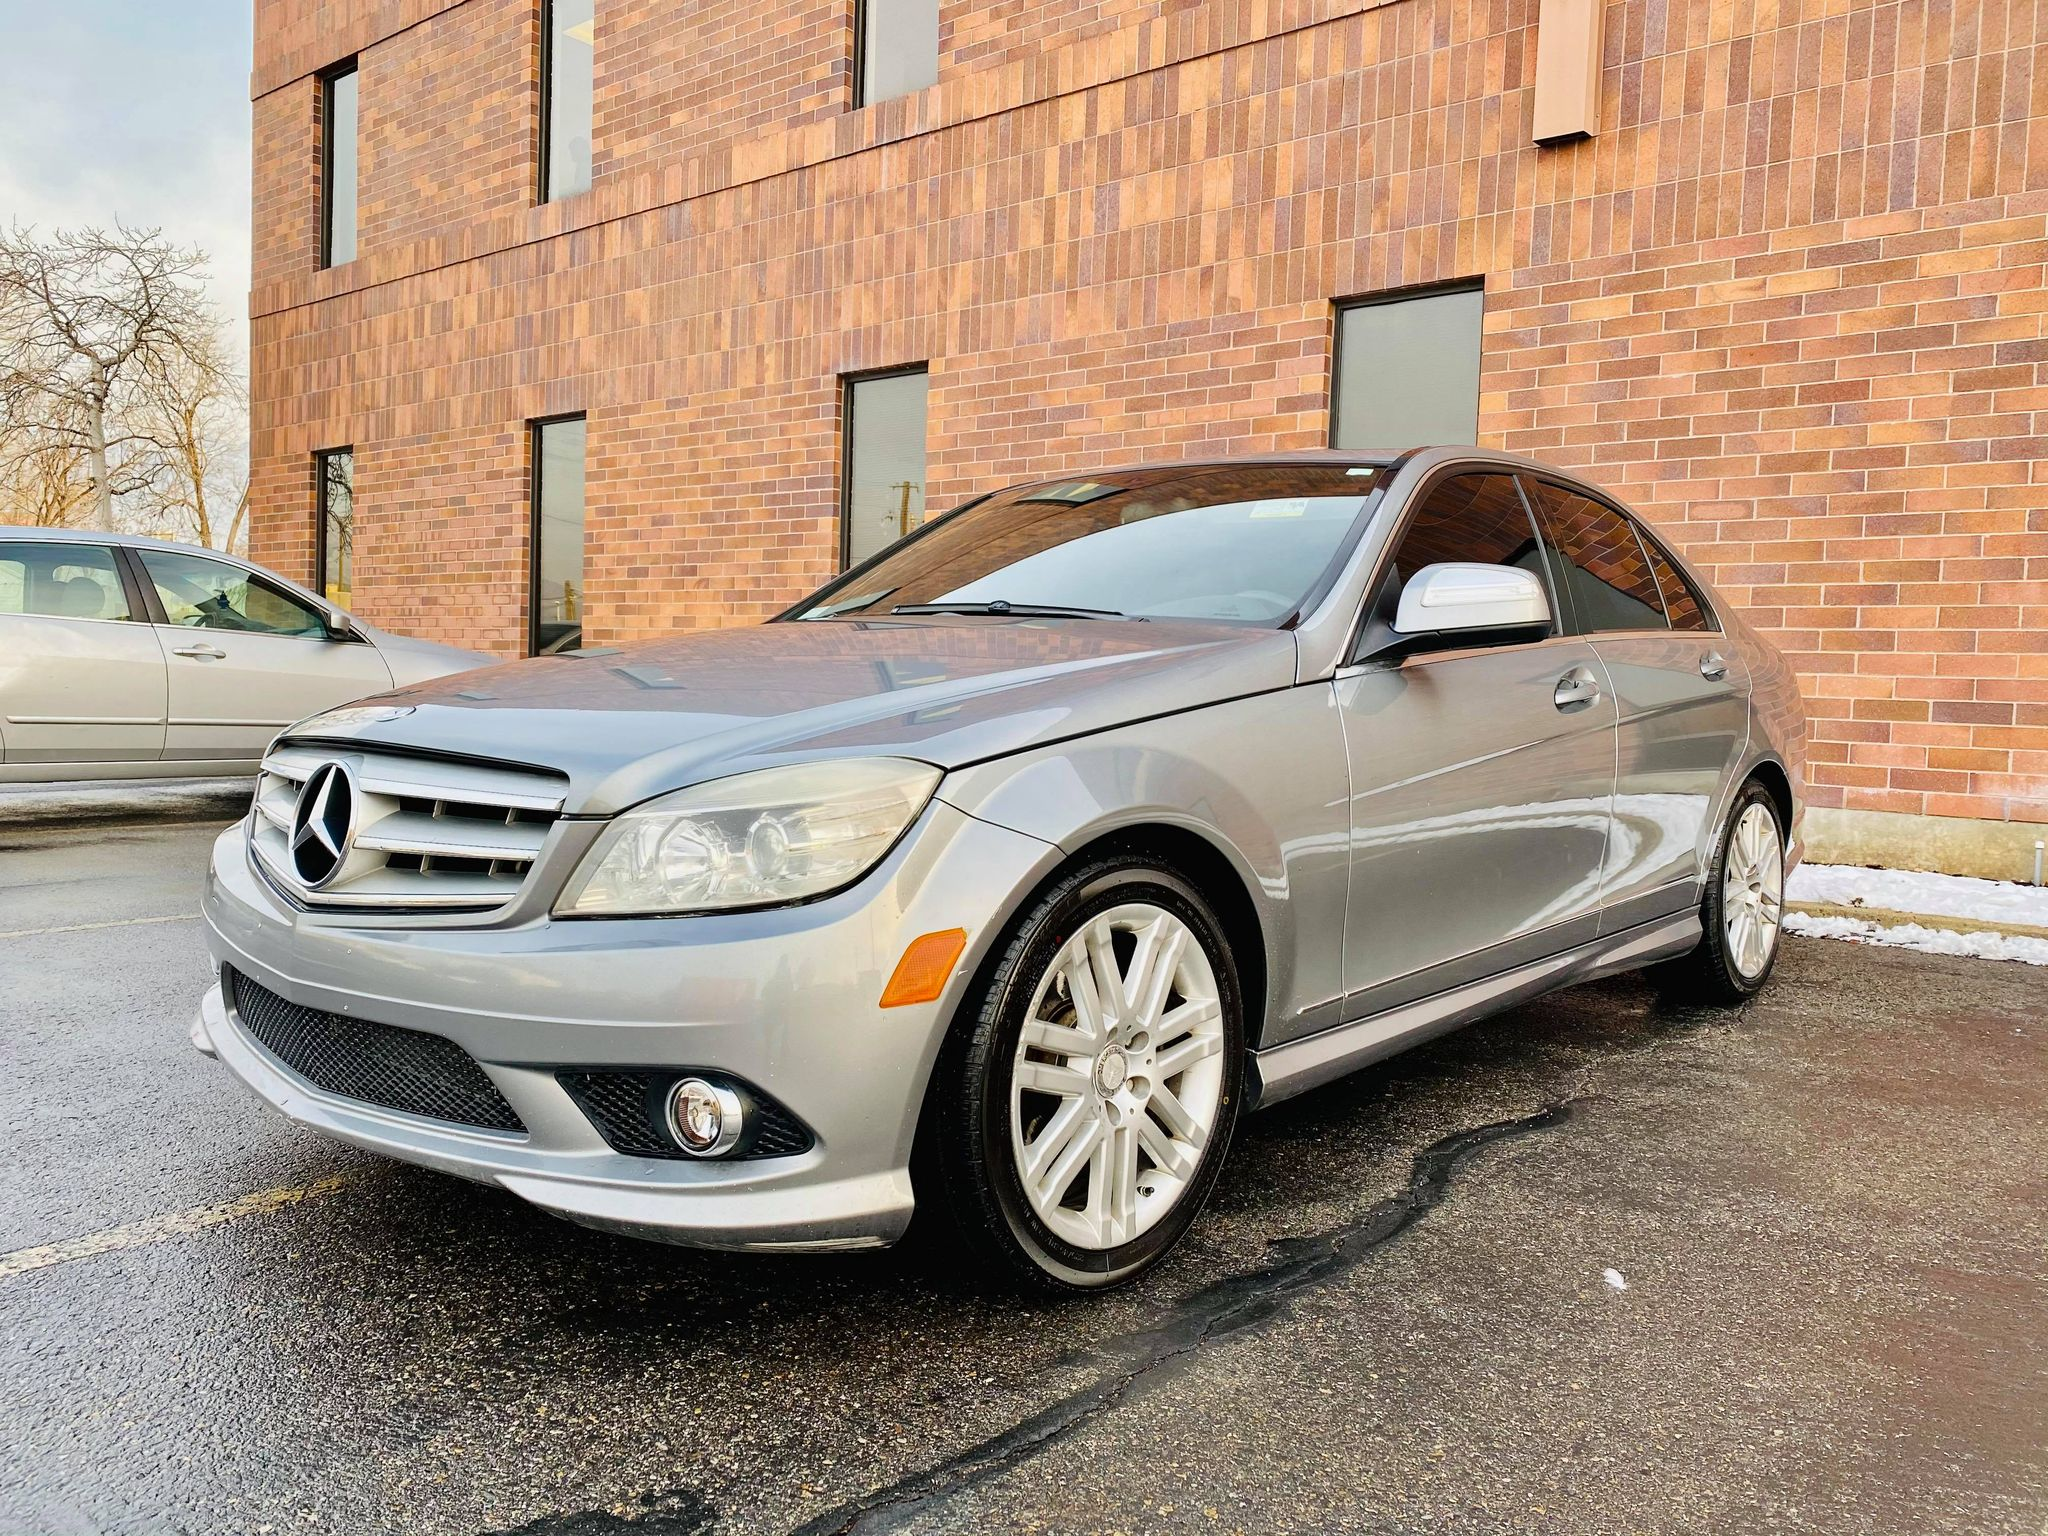 2008 MERCEDES C300 4MATIC